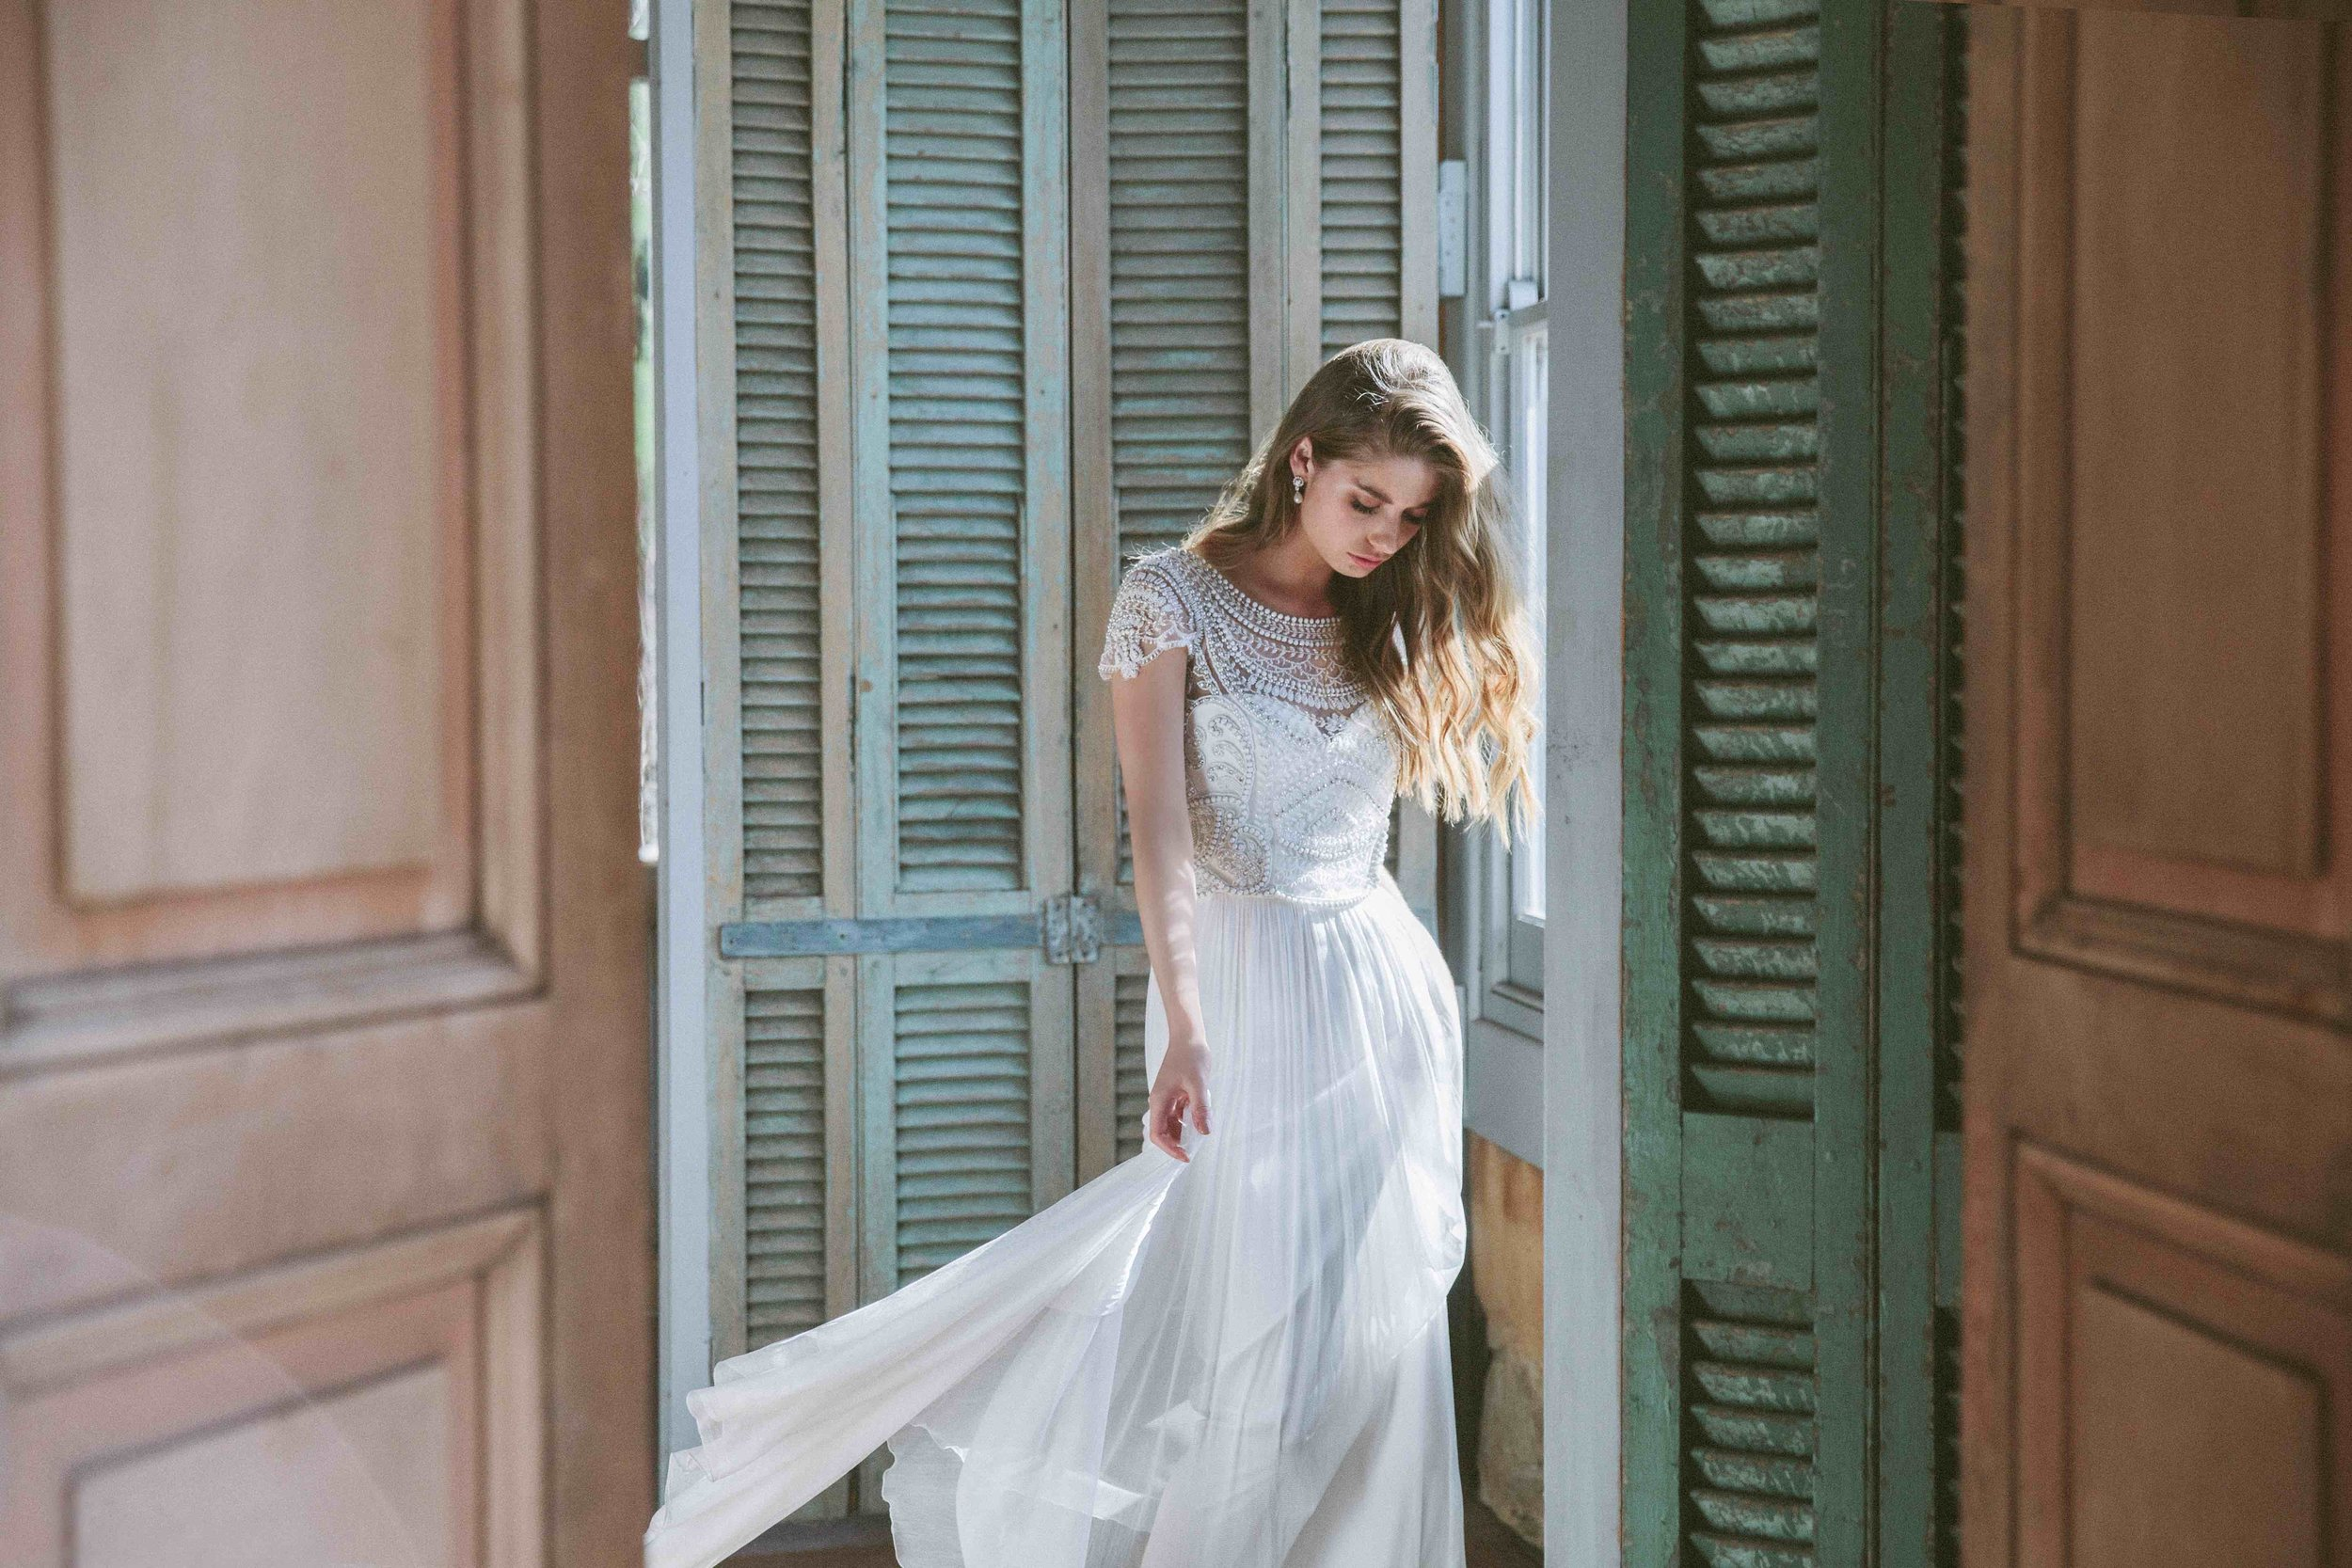 Ceremony Collection_Florence (Silk Tulle)_ivorycolour_image1_1mb.jpg